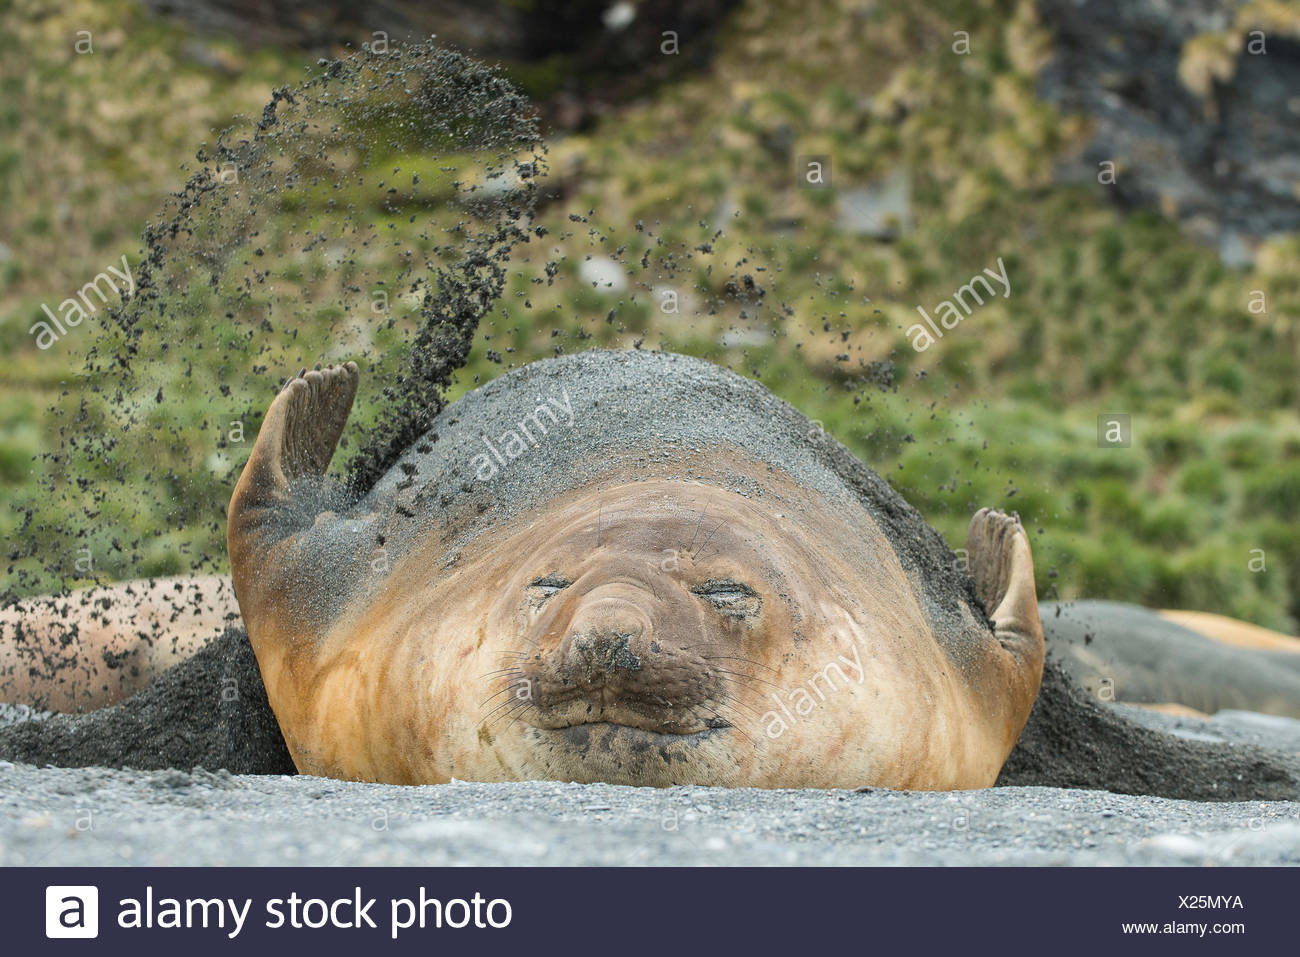 An adult male southern elephant seal brushes sand on top of itself to keep it cool. - Stock Image